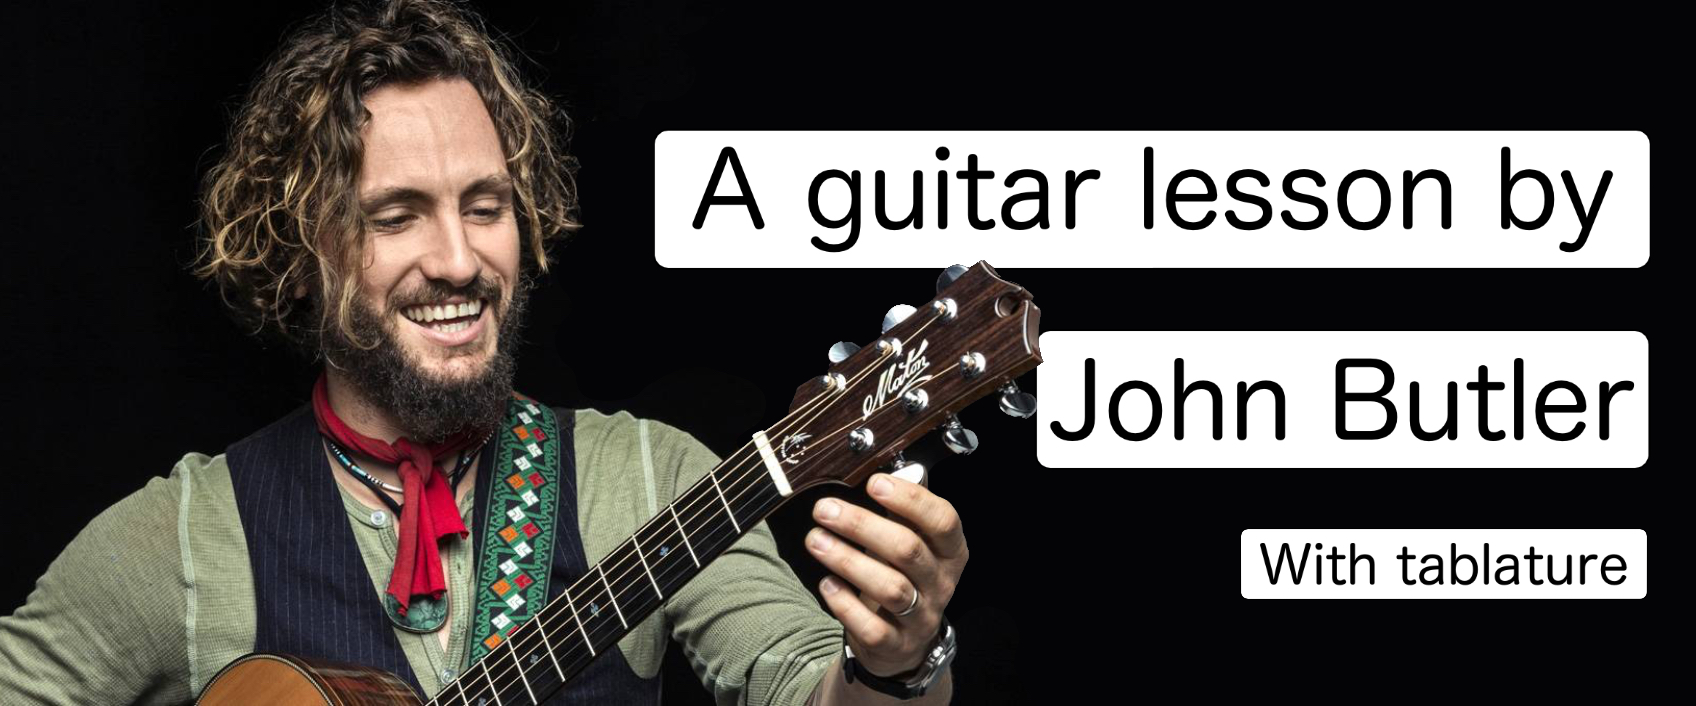 [VIDEO] John Butler teaches you how to play one of his riff